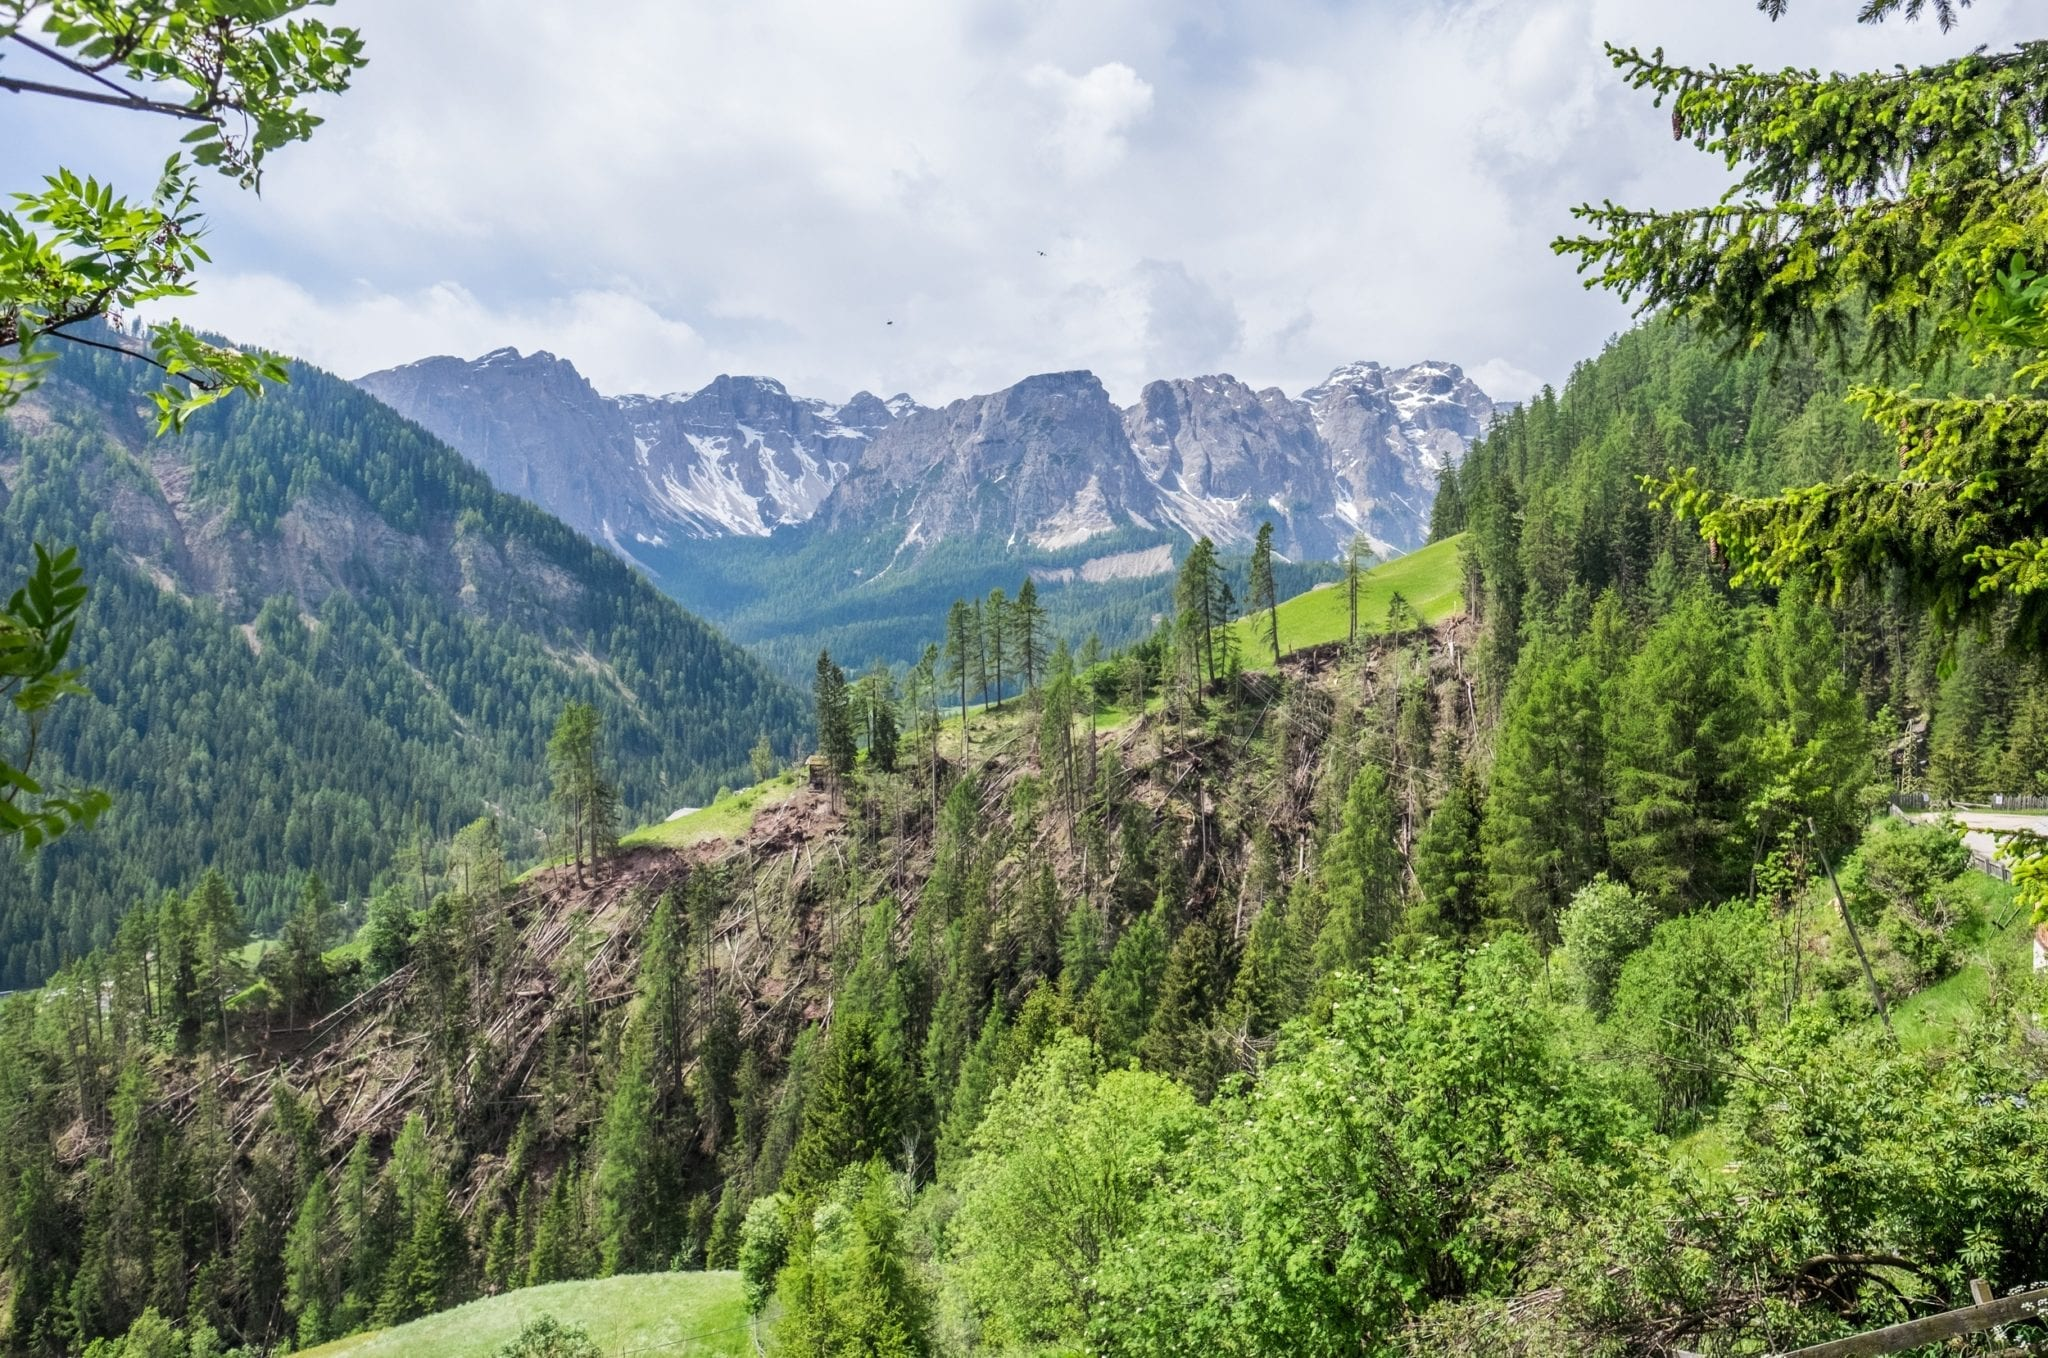 A view of the Dolomites in the background with a hill covered with dead evergreen trees lying on the ground.